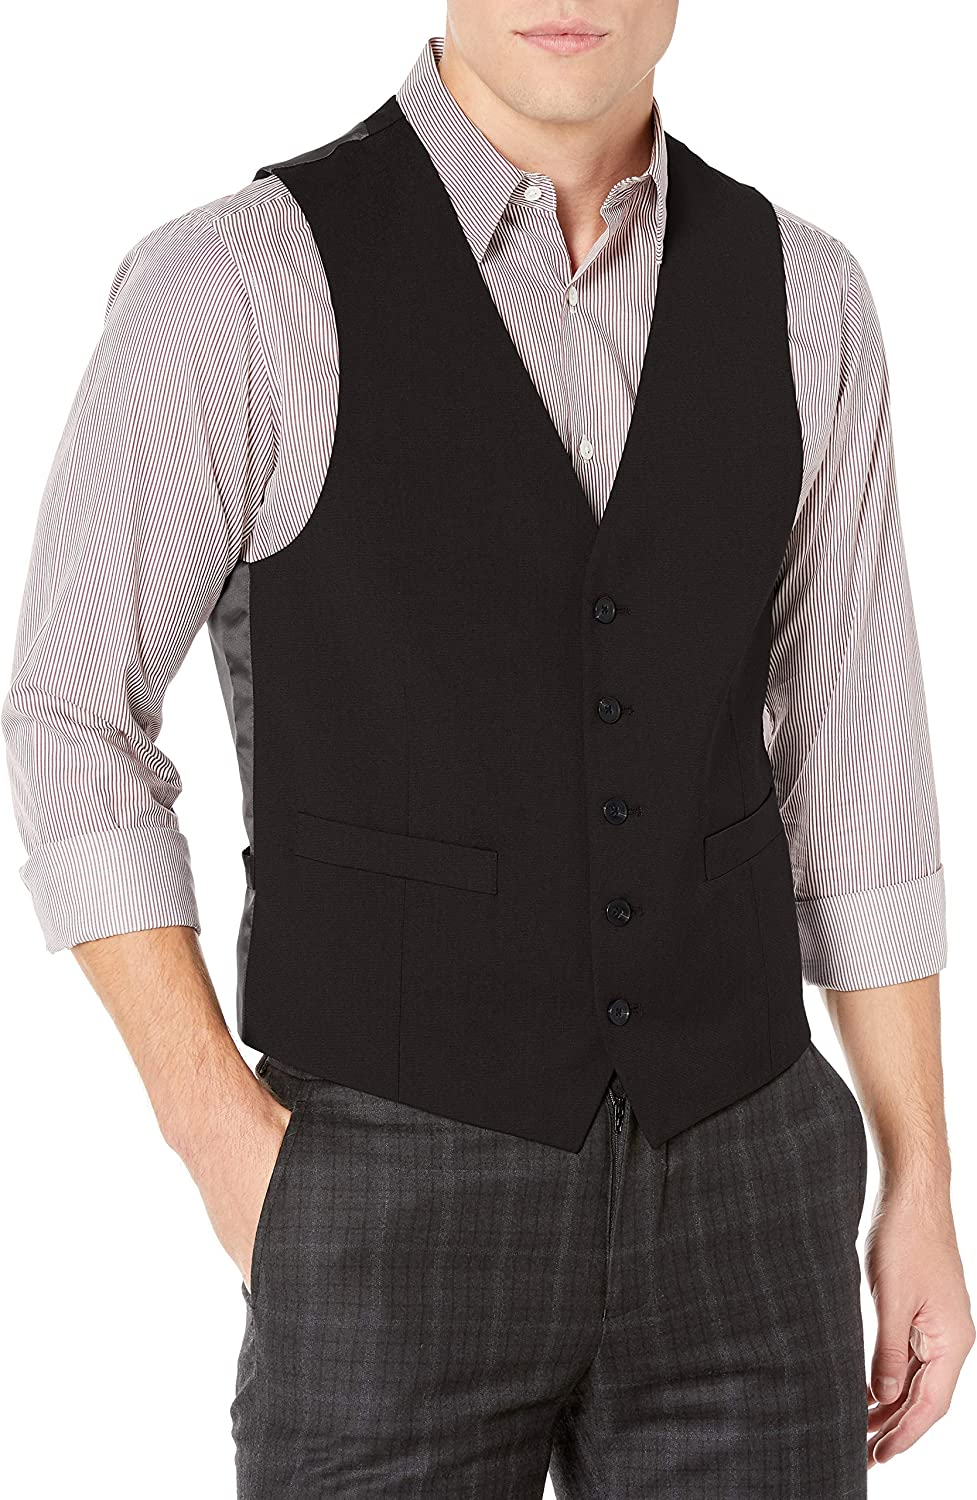 Unlisted by Kenneth Cole mens Suit Separate Vest